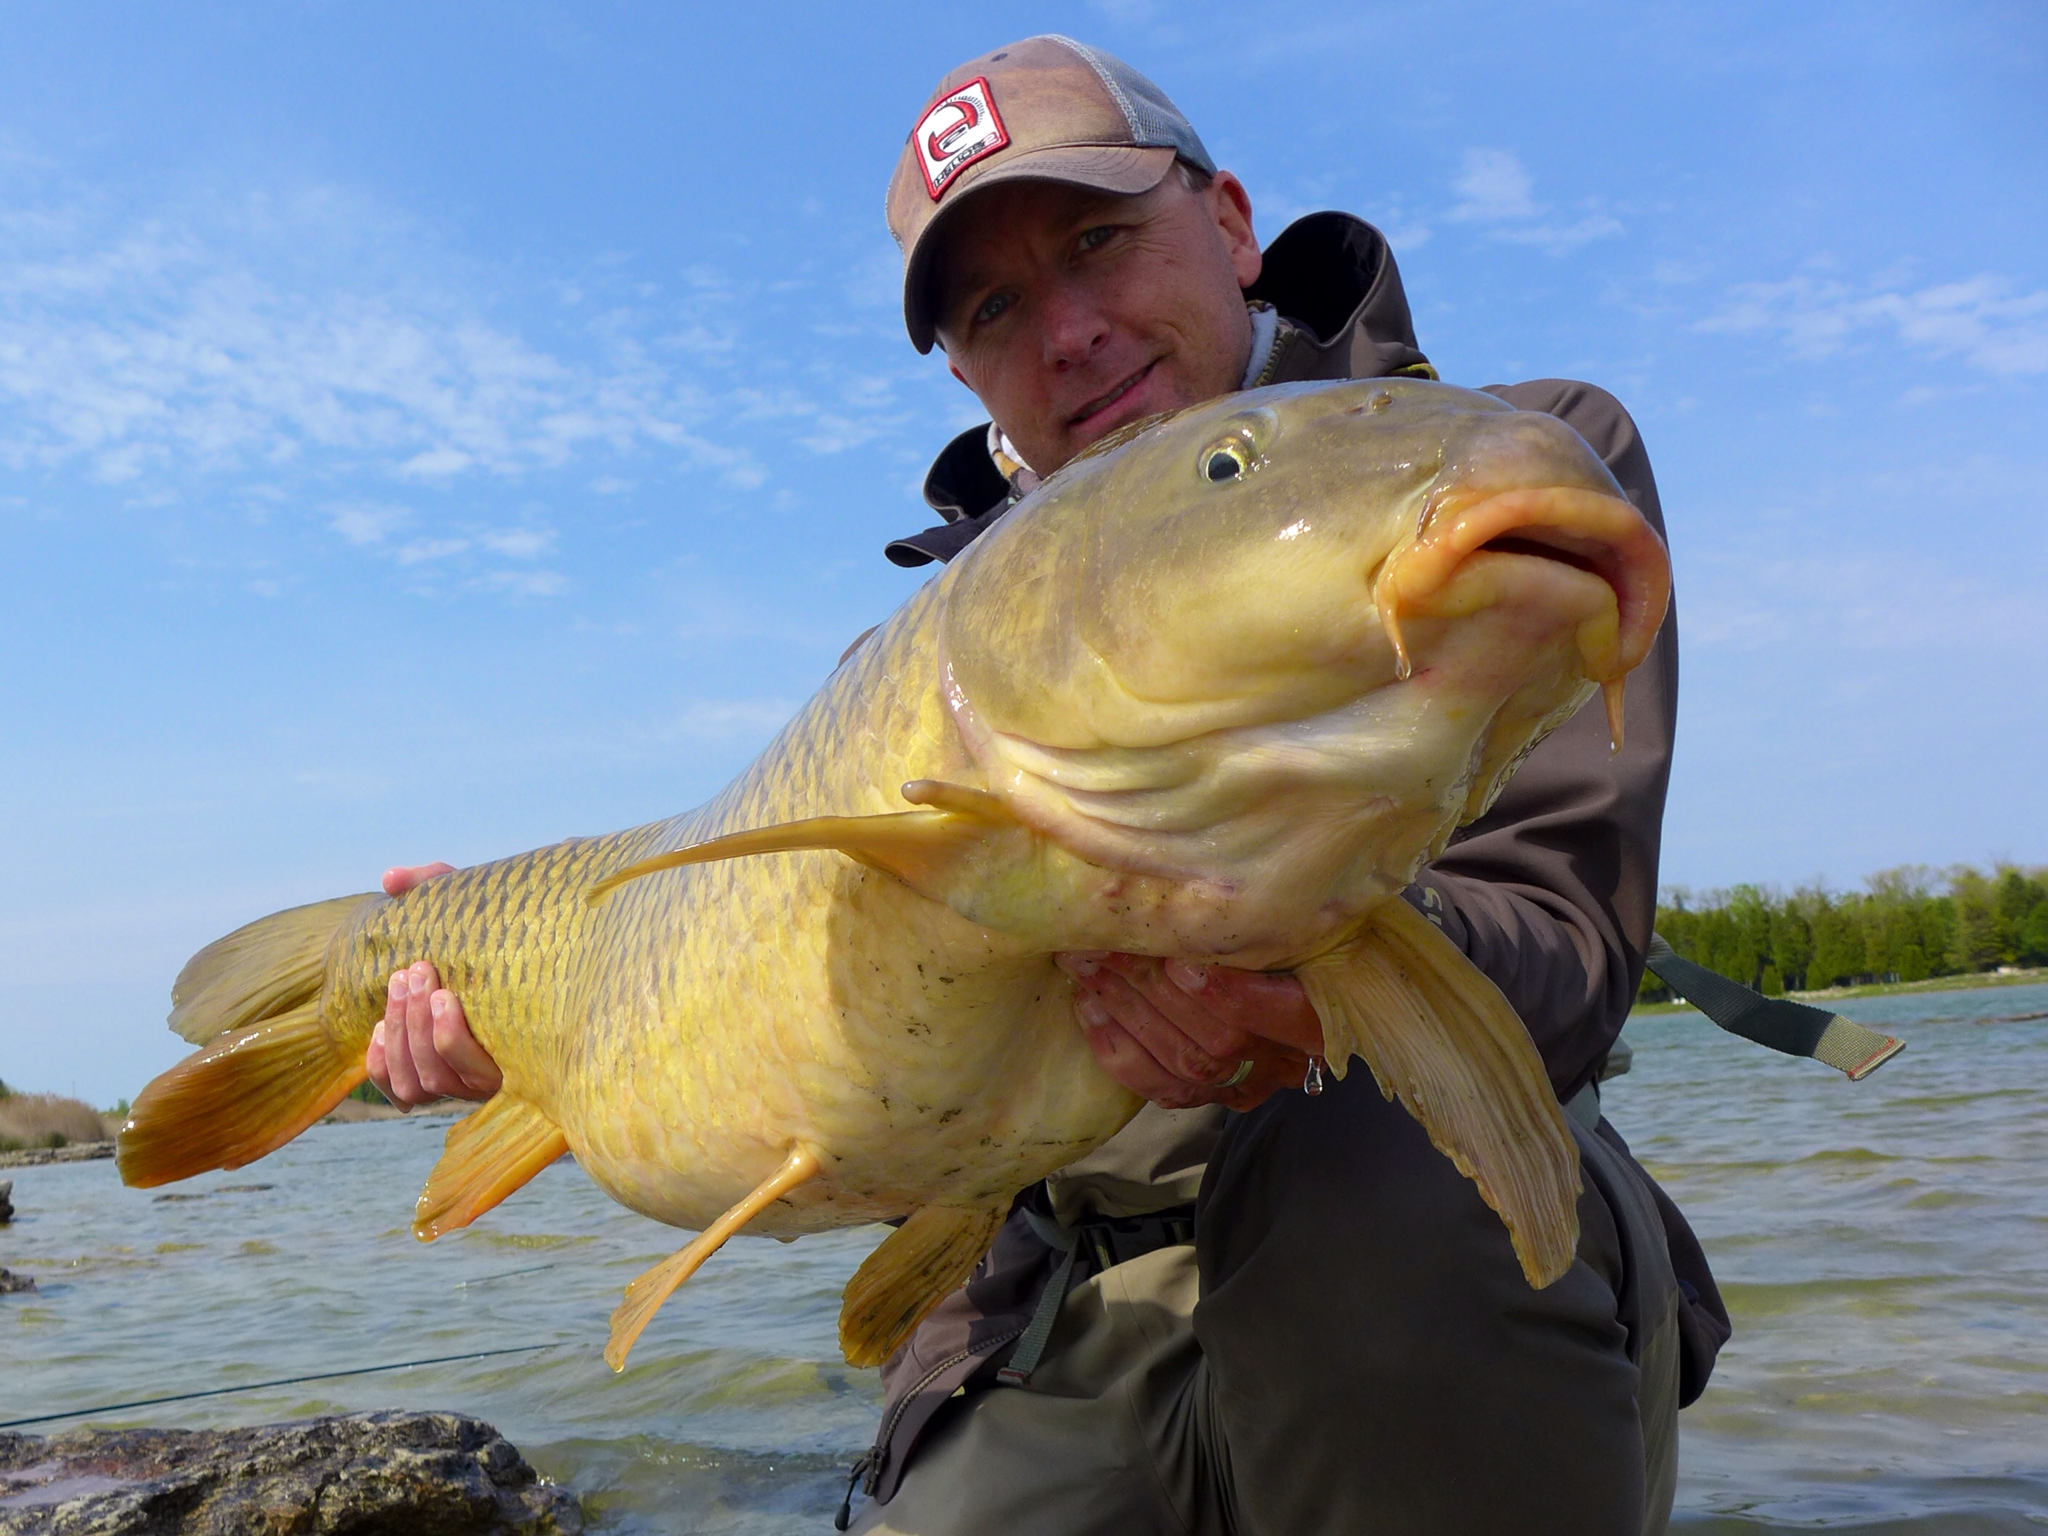 Trip report lake michigan carp extravaganza orvis news for Fishing in lake michigan